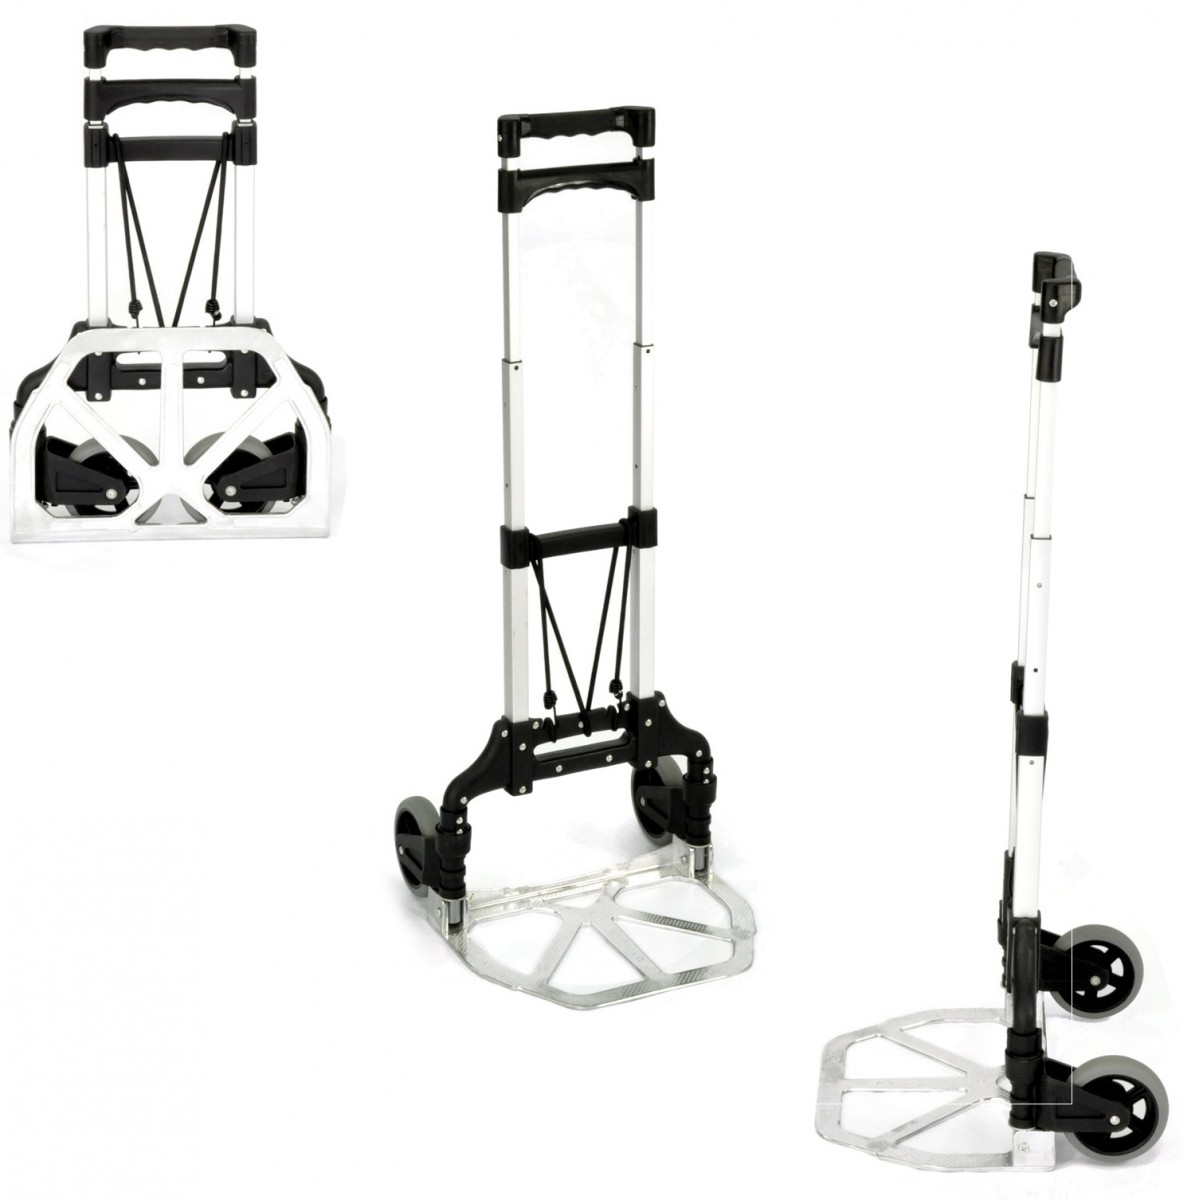 c88d17a4f0d9 Sydney Trolleys | Folding Hand Truck | Hand Trolleys, Folding ...